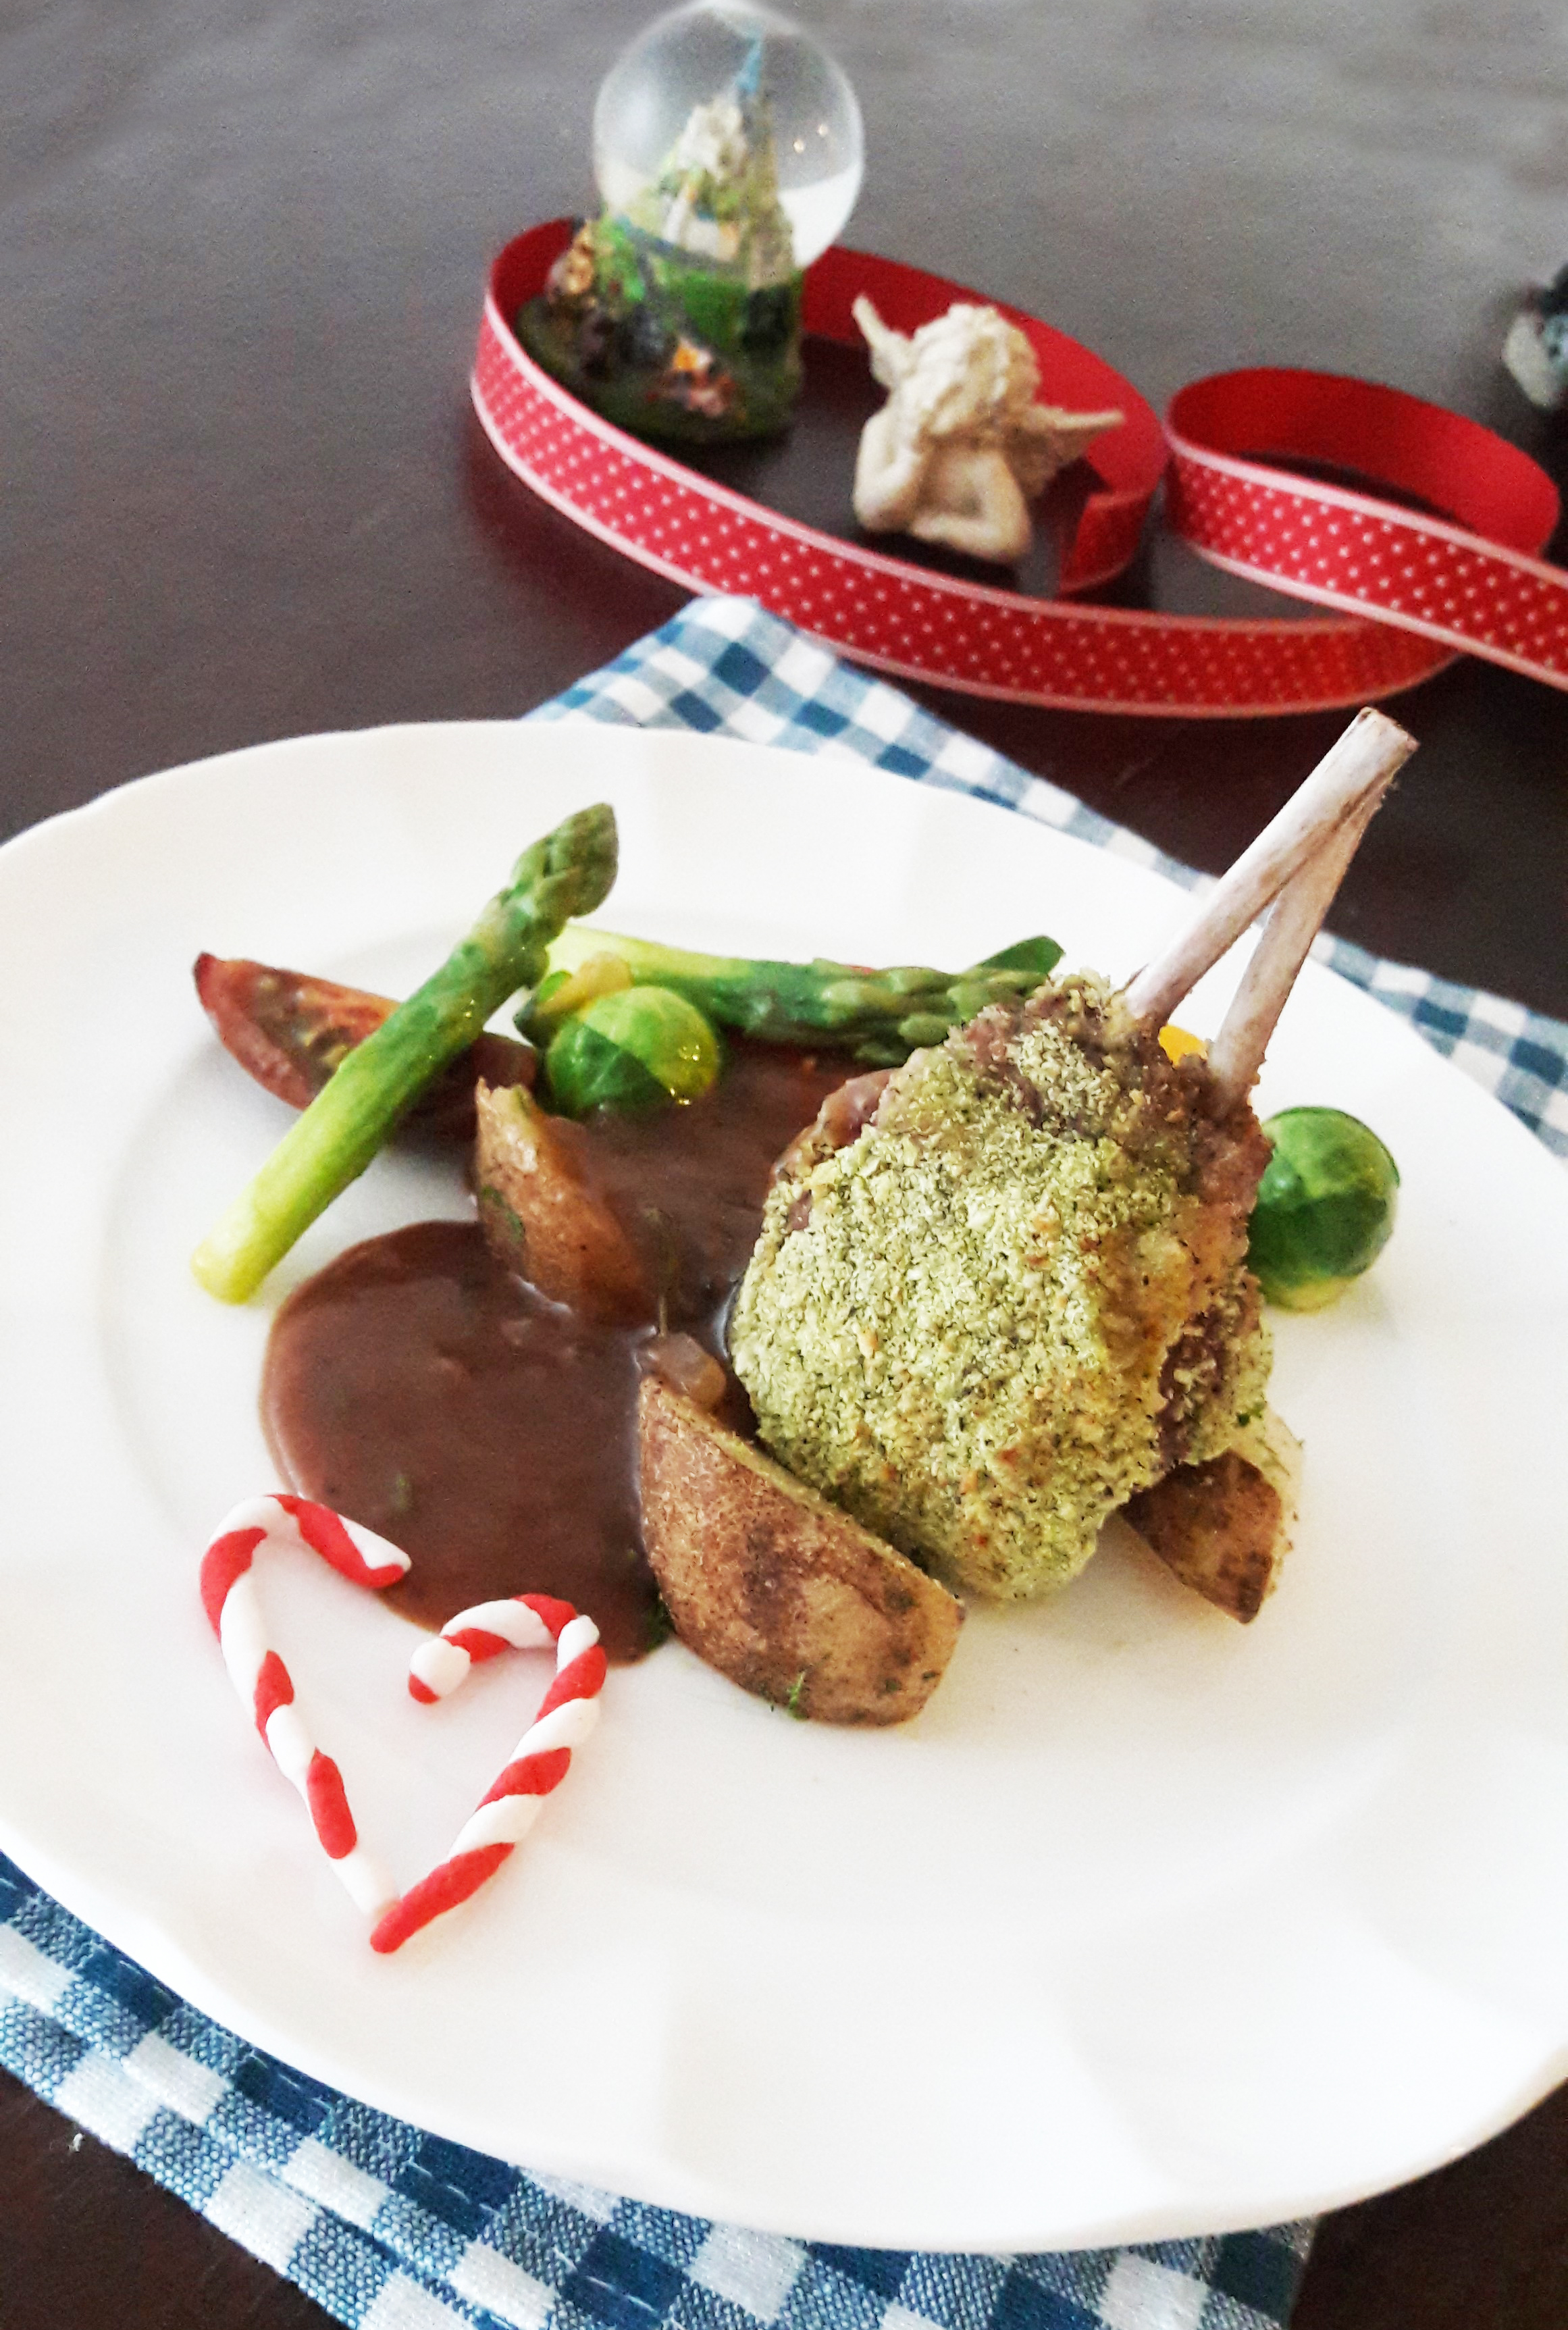 herbs crust lamb rack 香料烤羊排